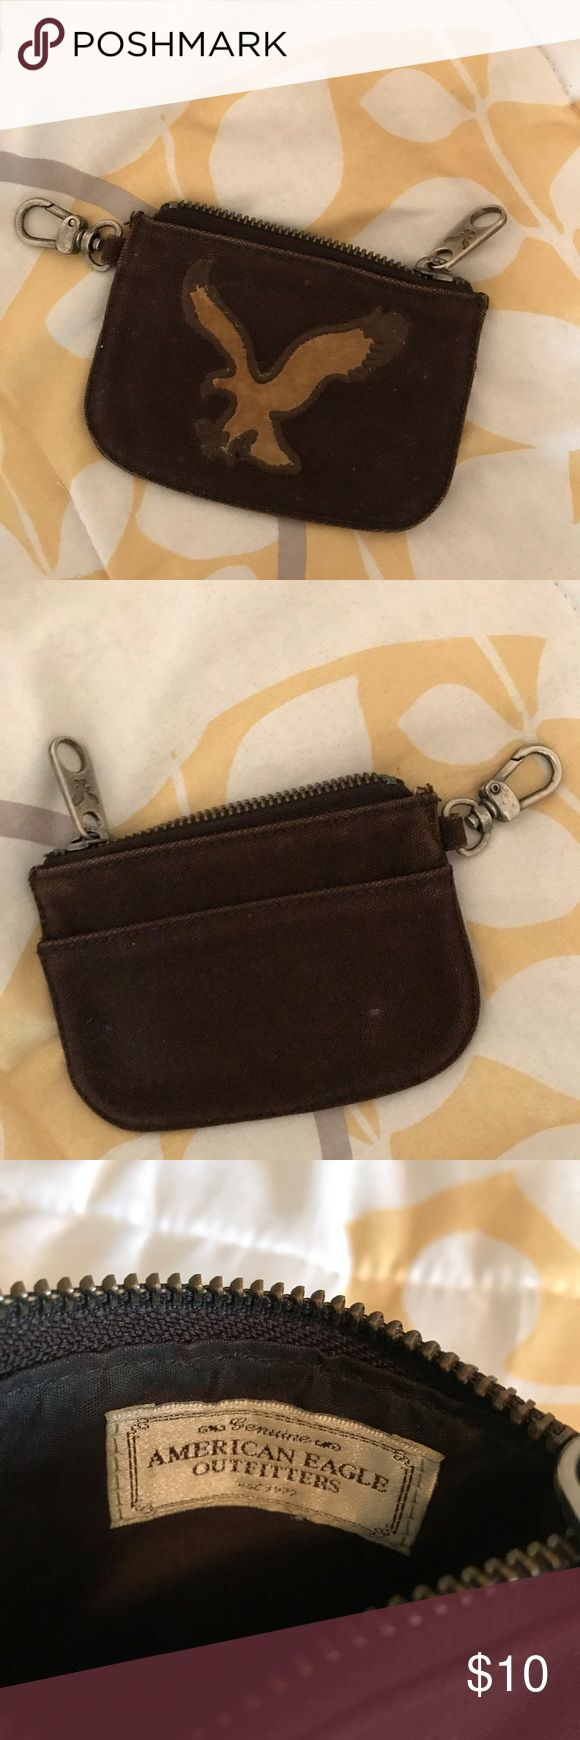 American eagle change purse! 💼 Slightly used vintage change purse from American eagle! American Eagle Outfitters Bags Wallets